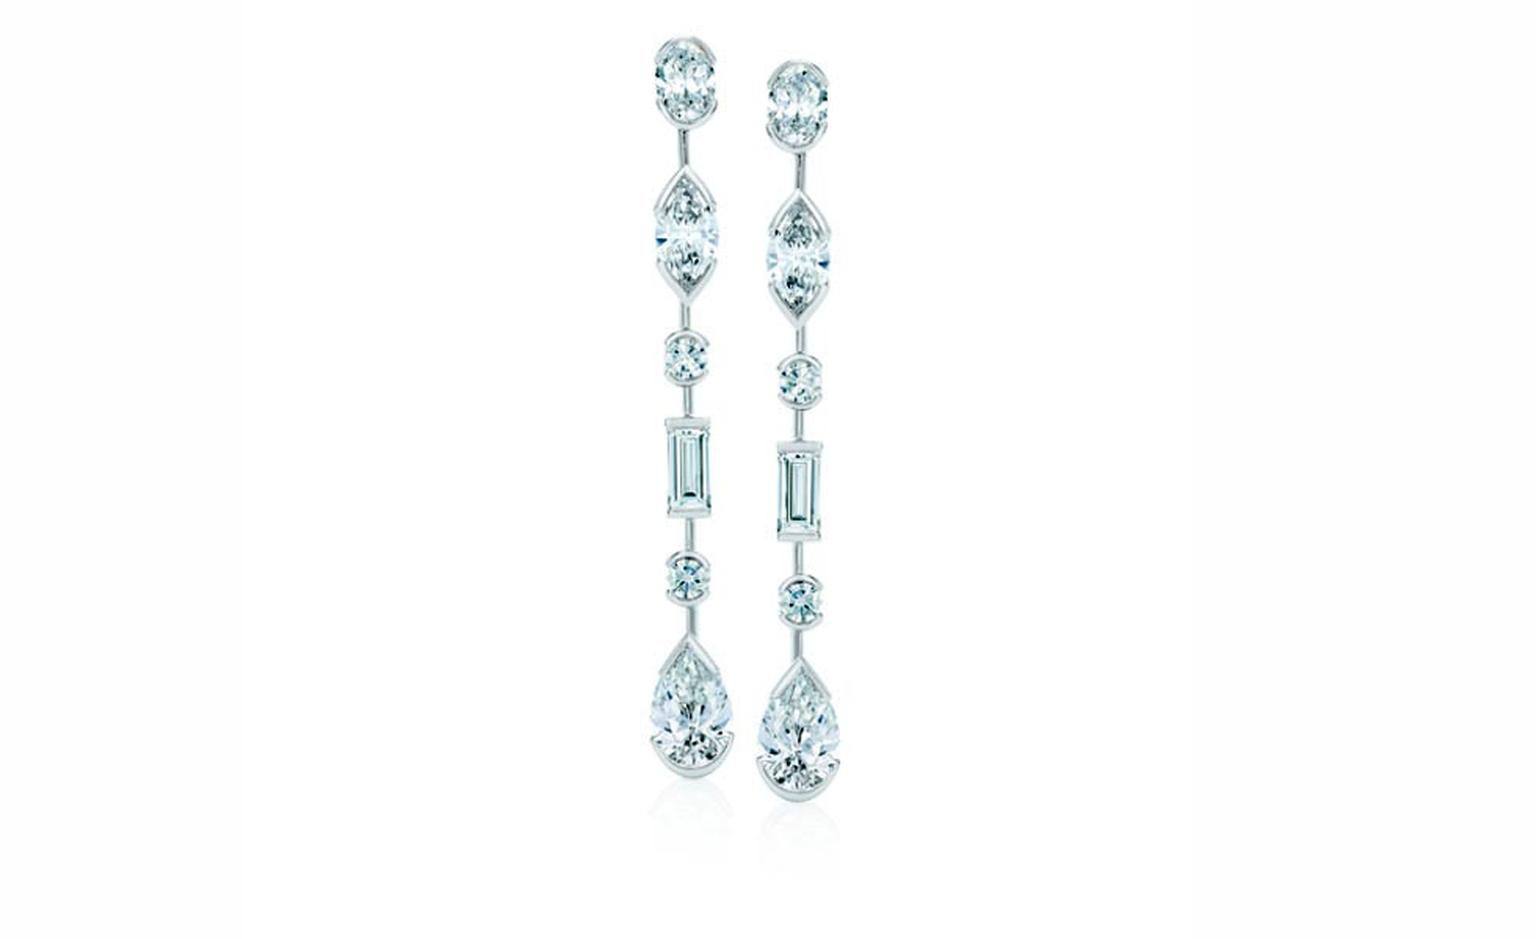 DE BEERS, Swan Lake Earrings White Gold and Diamonds. POA